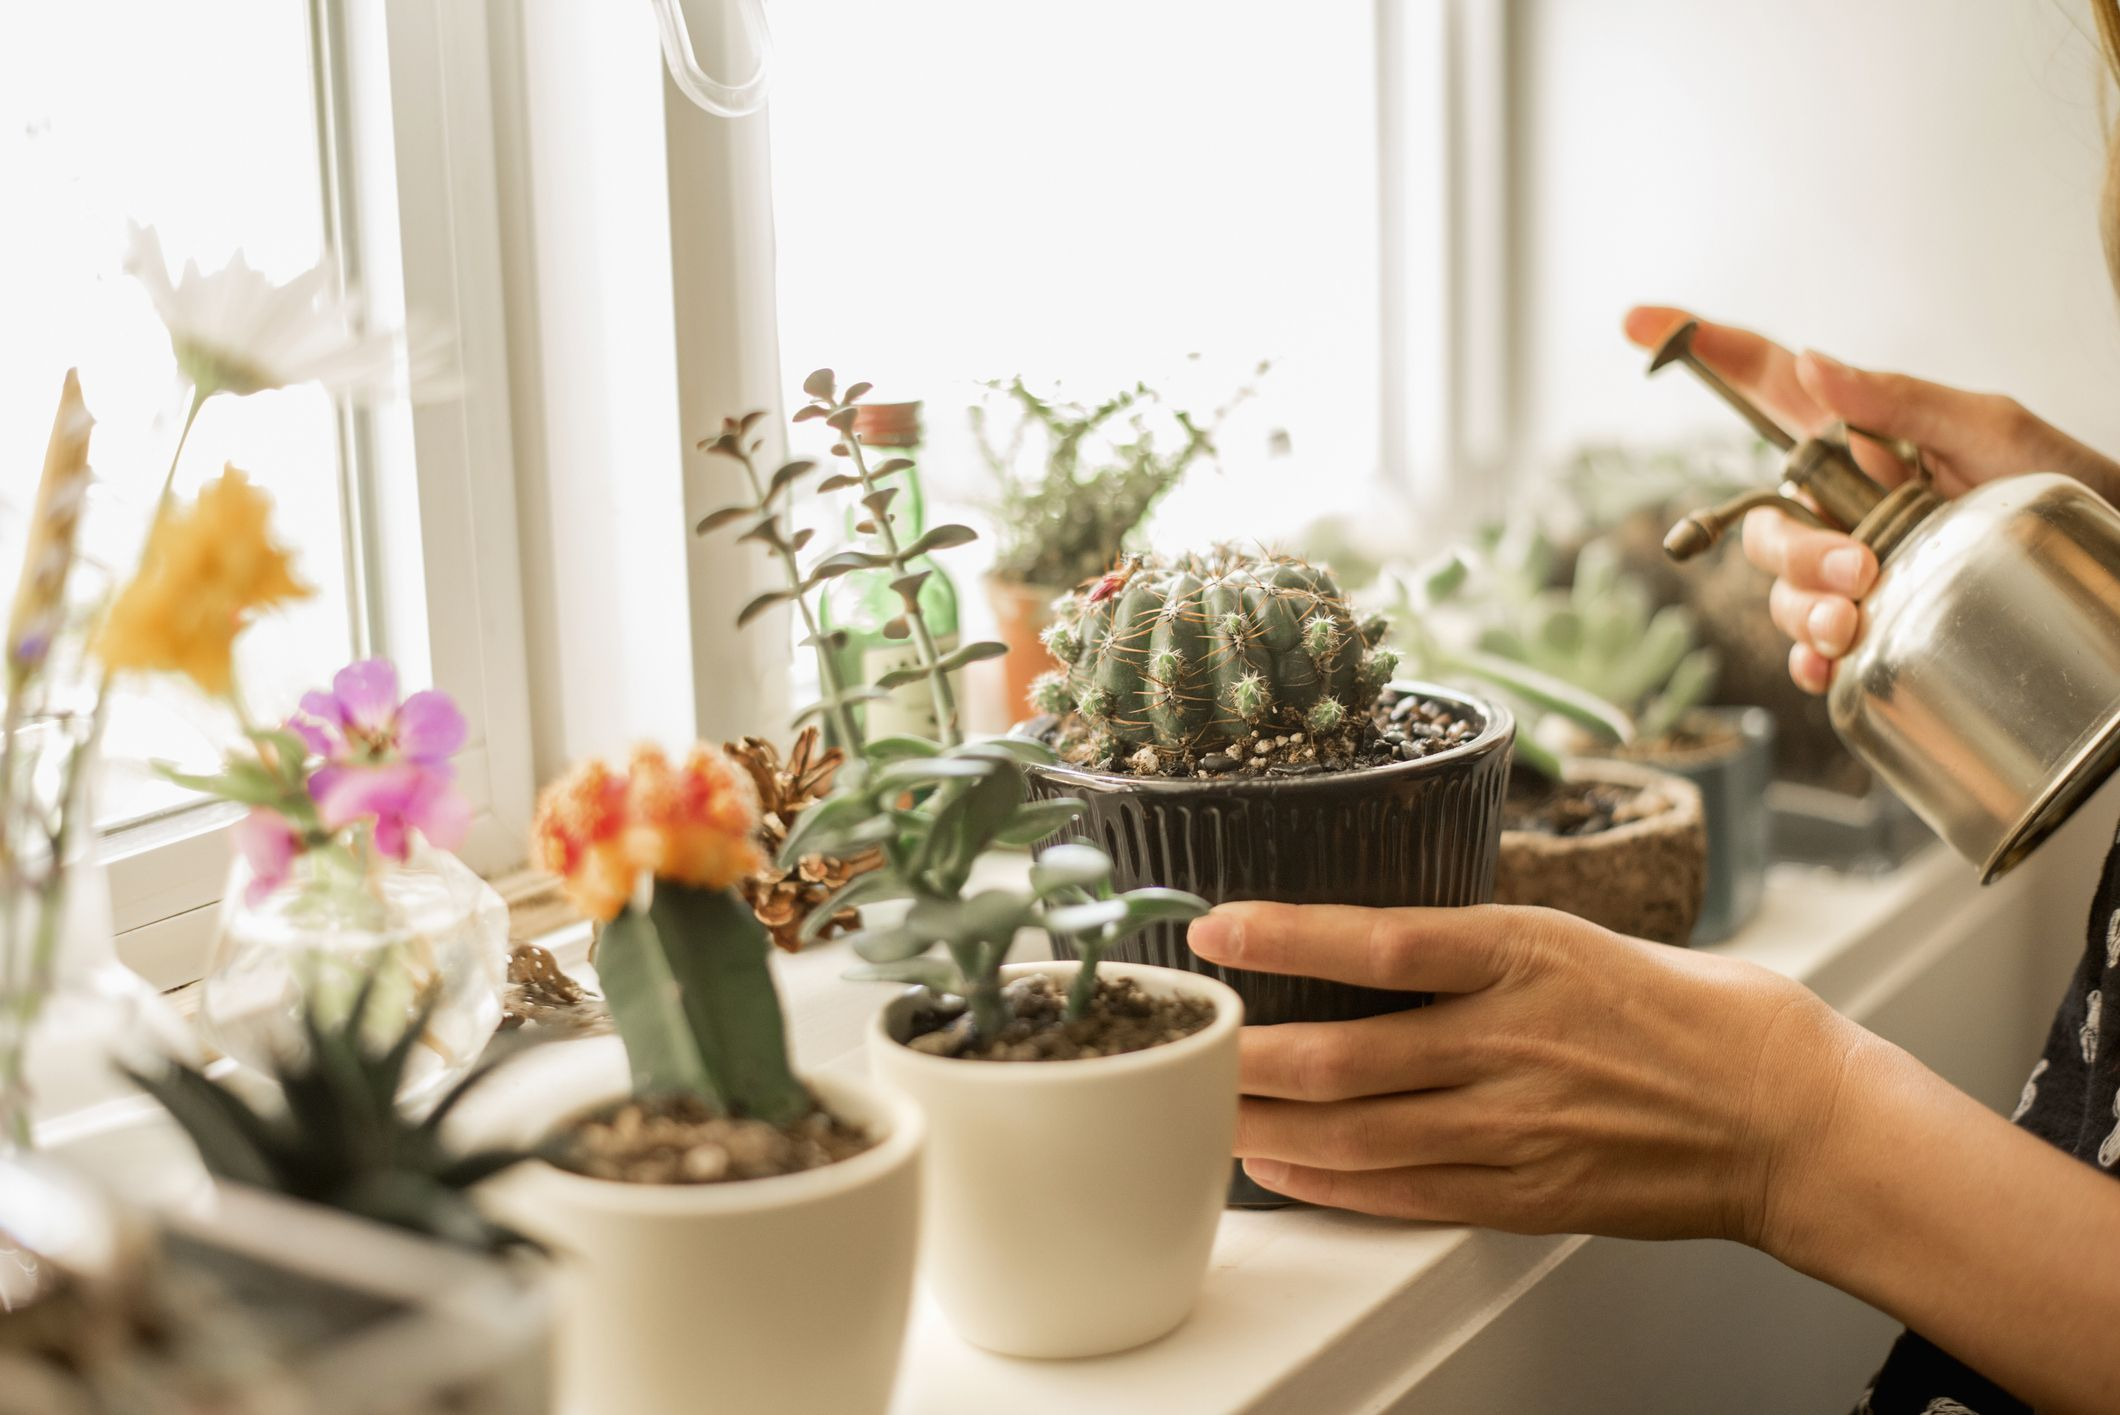 15 of the Best Types of Cactus You Can Grow at Home